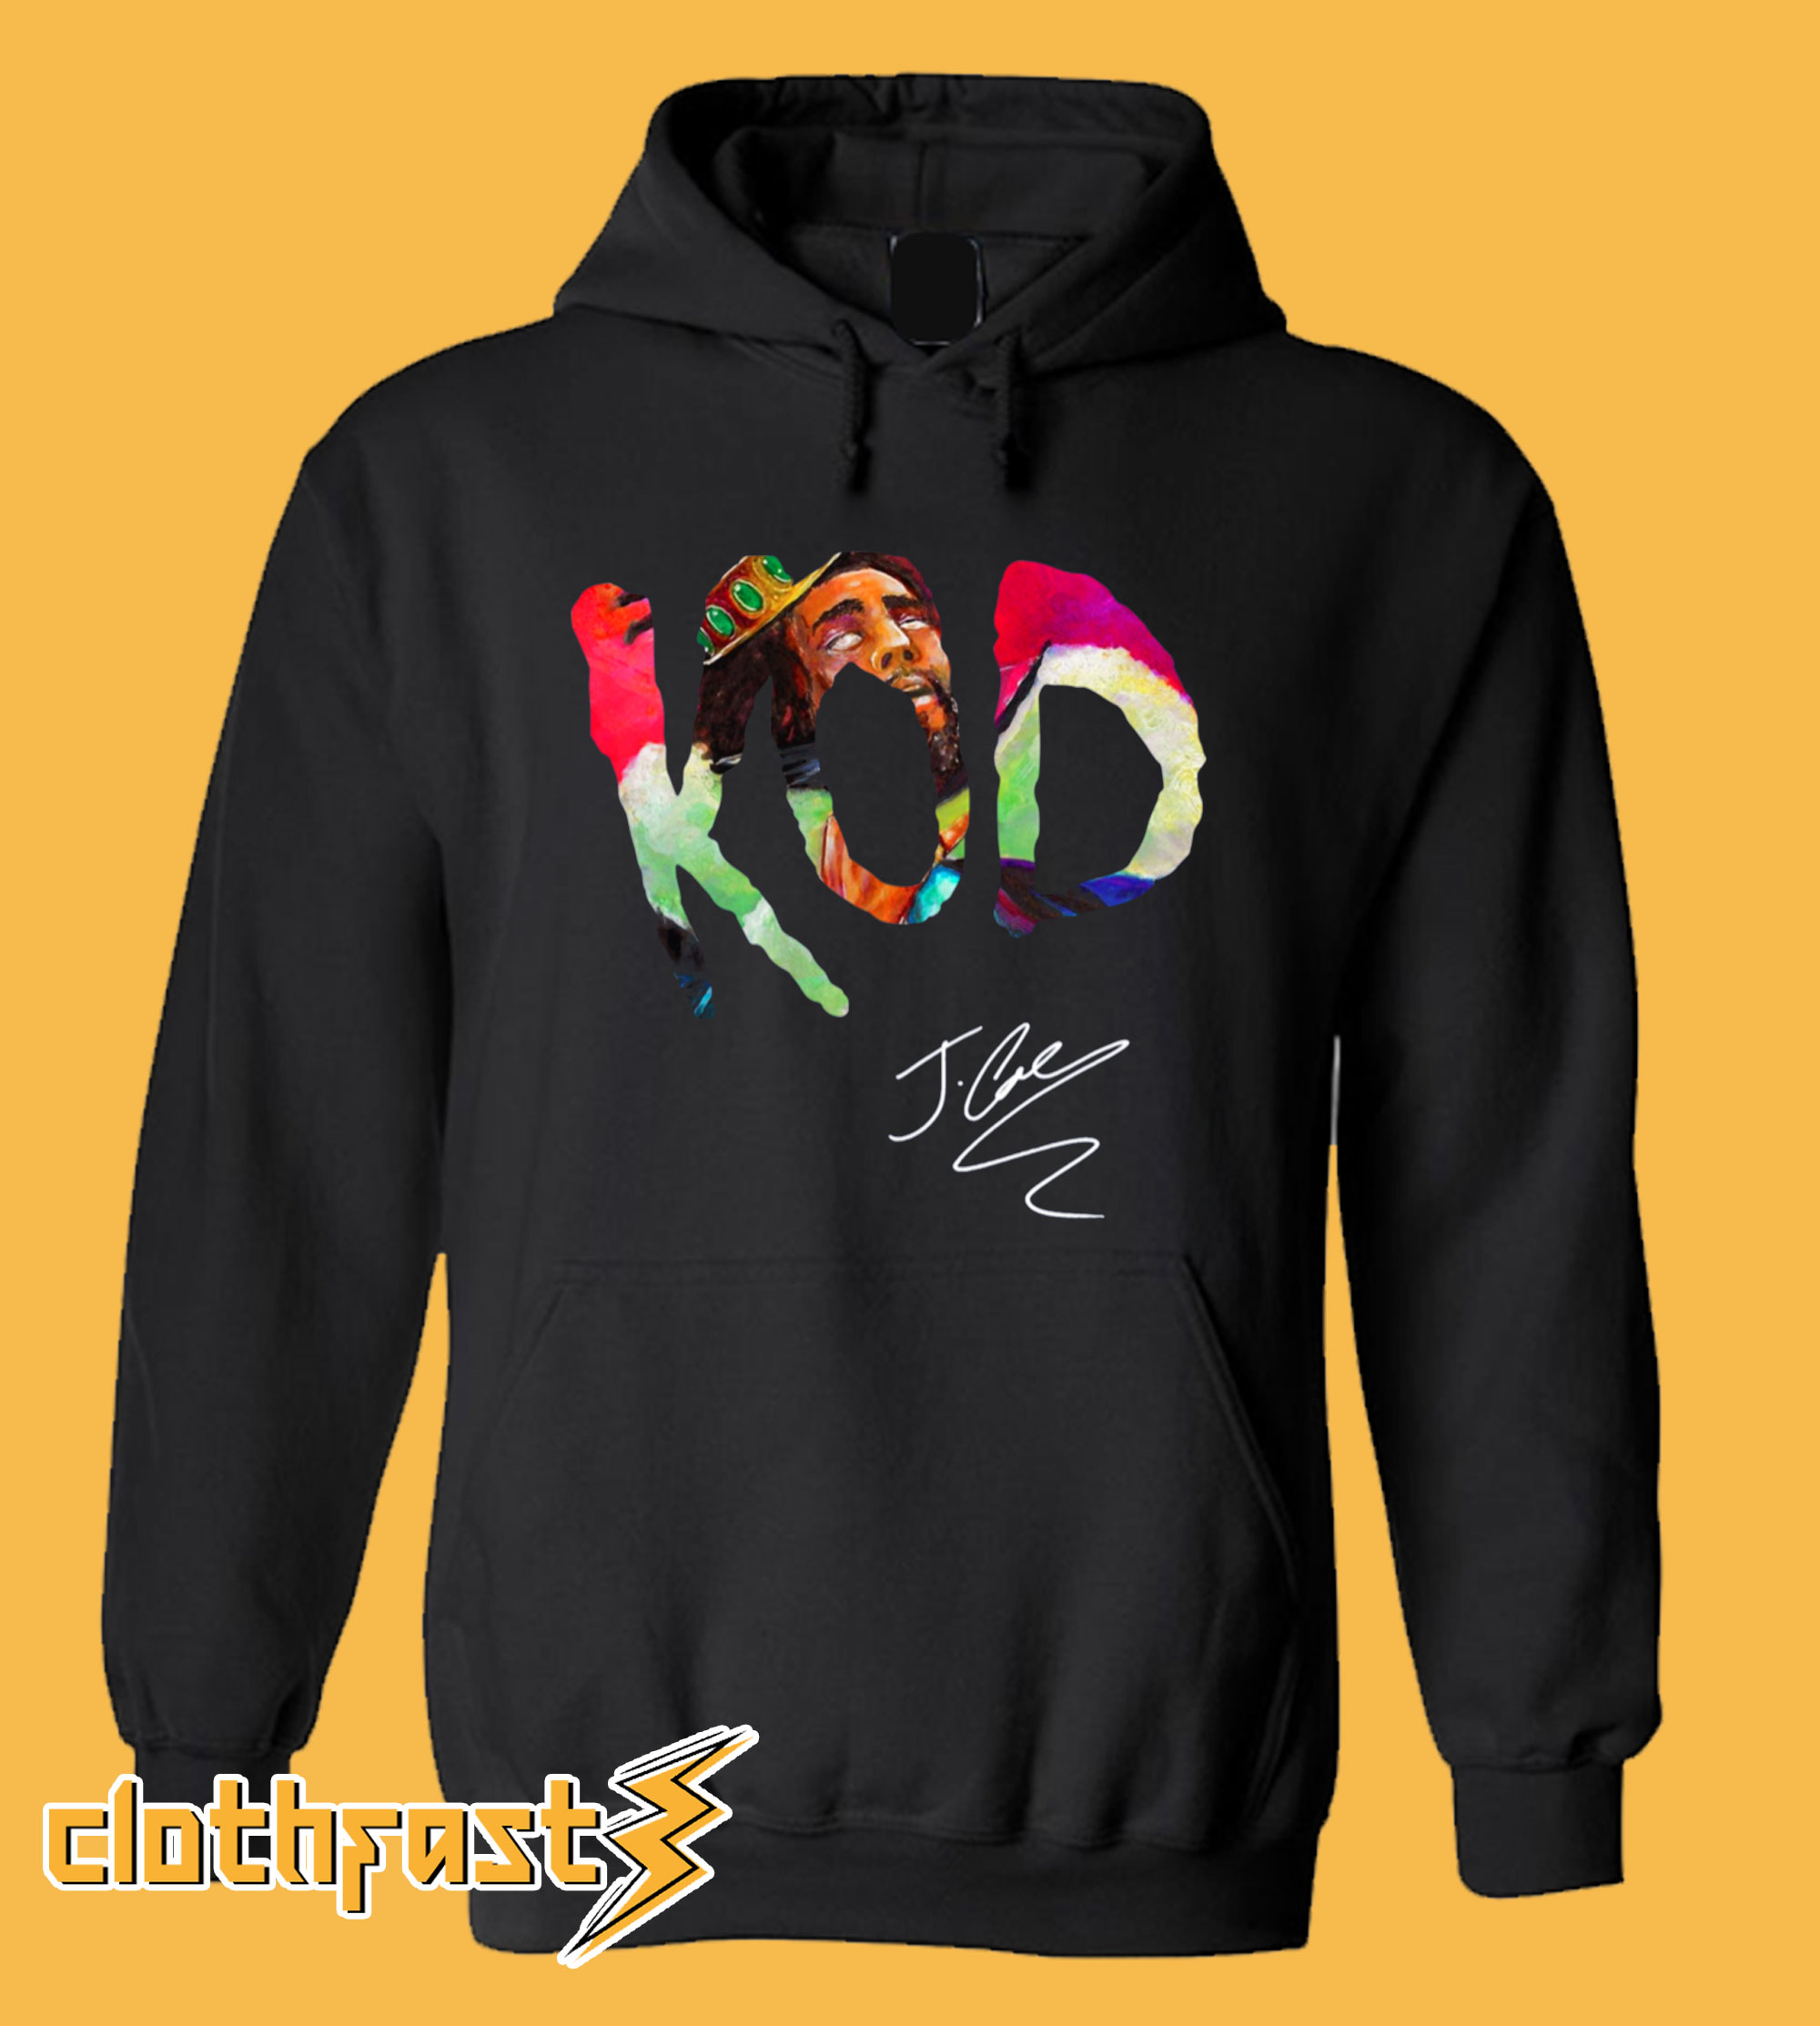 J. Cole's 'KOD' With Signature Hoodie